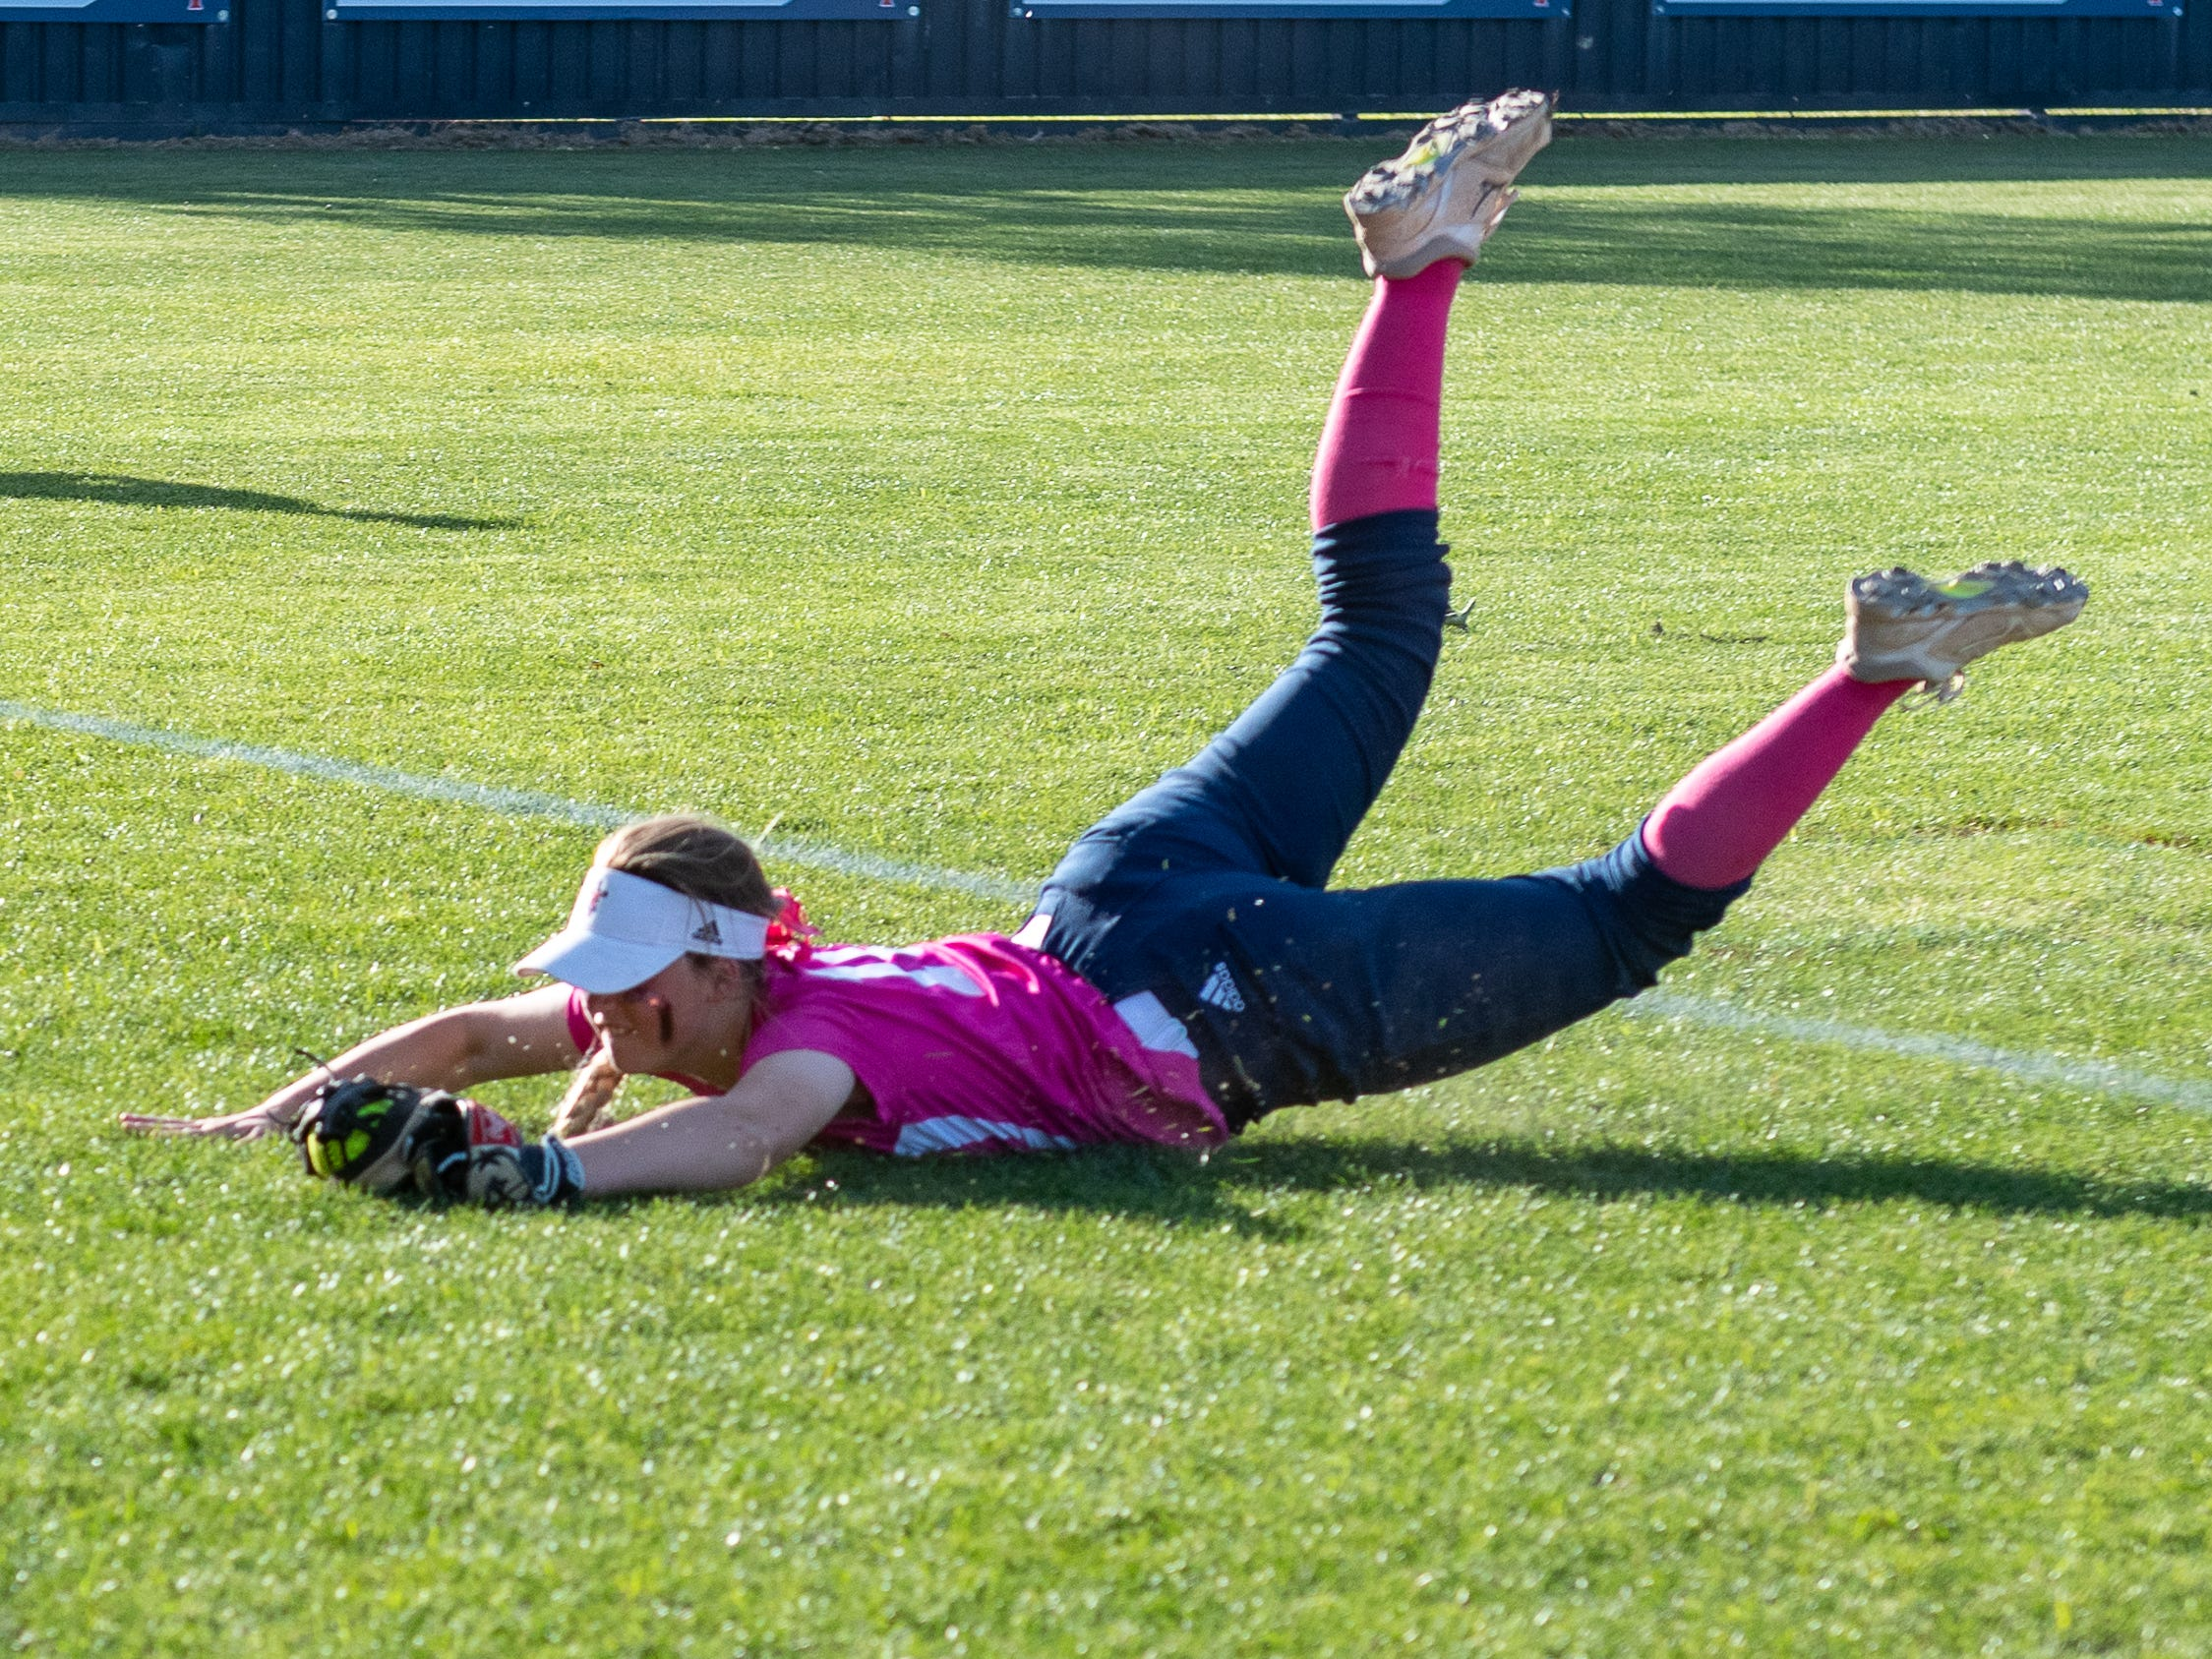 Krystyn Lormand dives to make a catch as Teurlings Catholic host St Thomas More Softball. Tuesday, April 2, 2019.